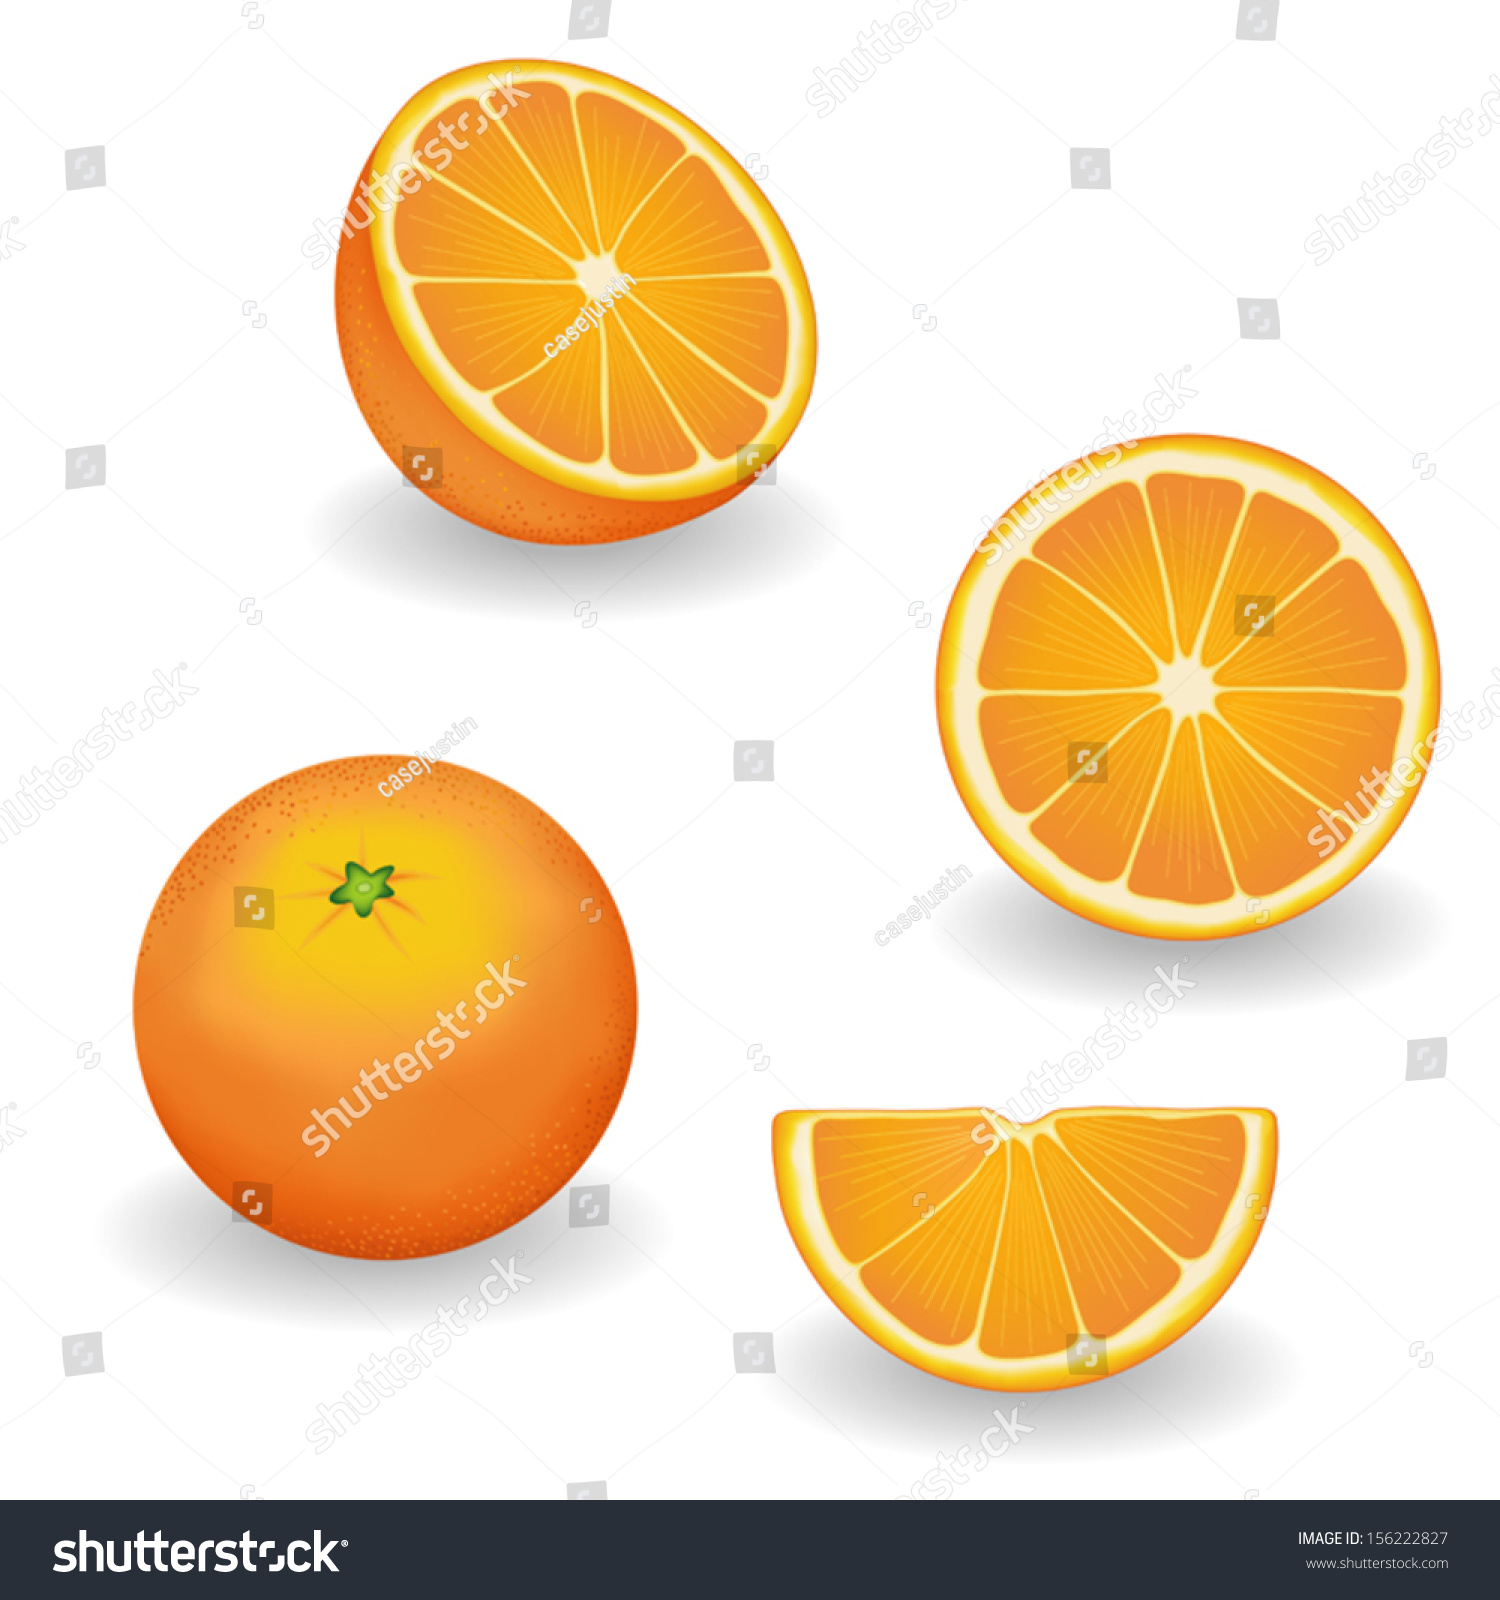 Oranges Four Views Whole Half Slice Stock Vector